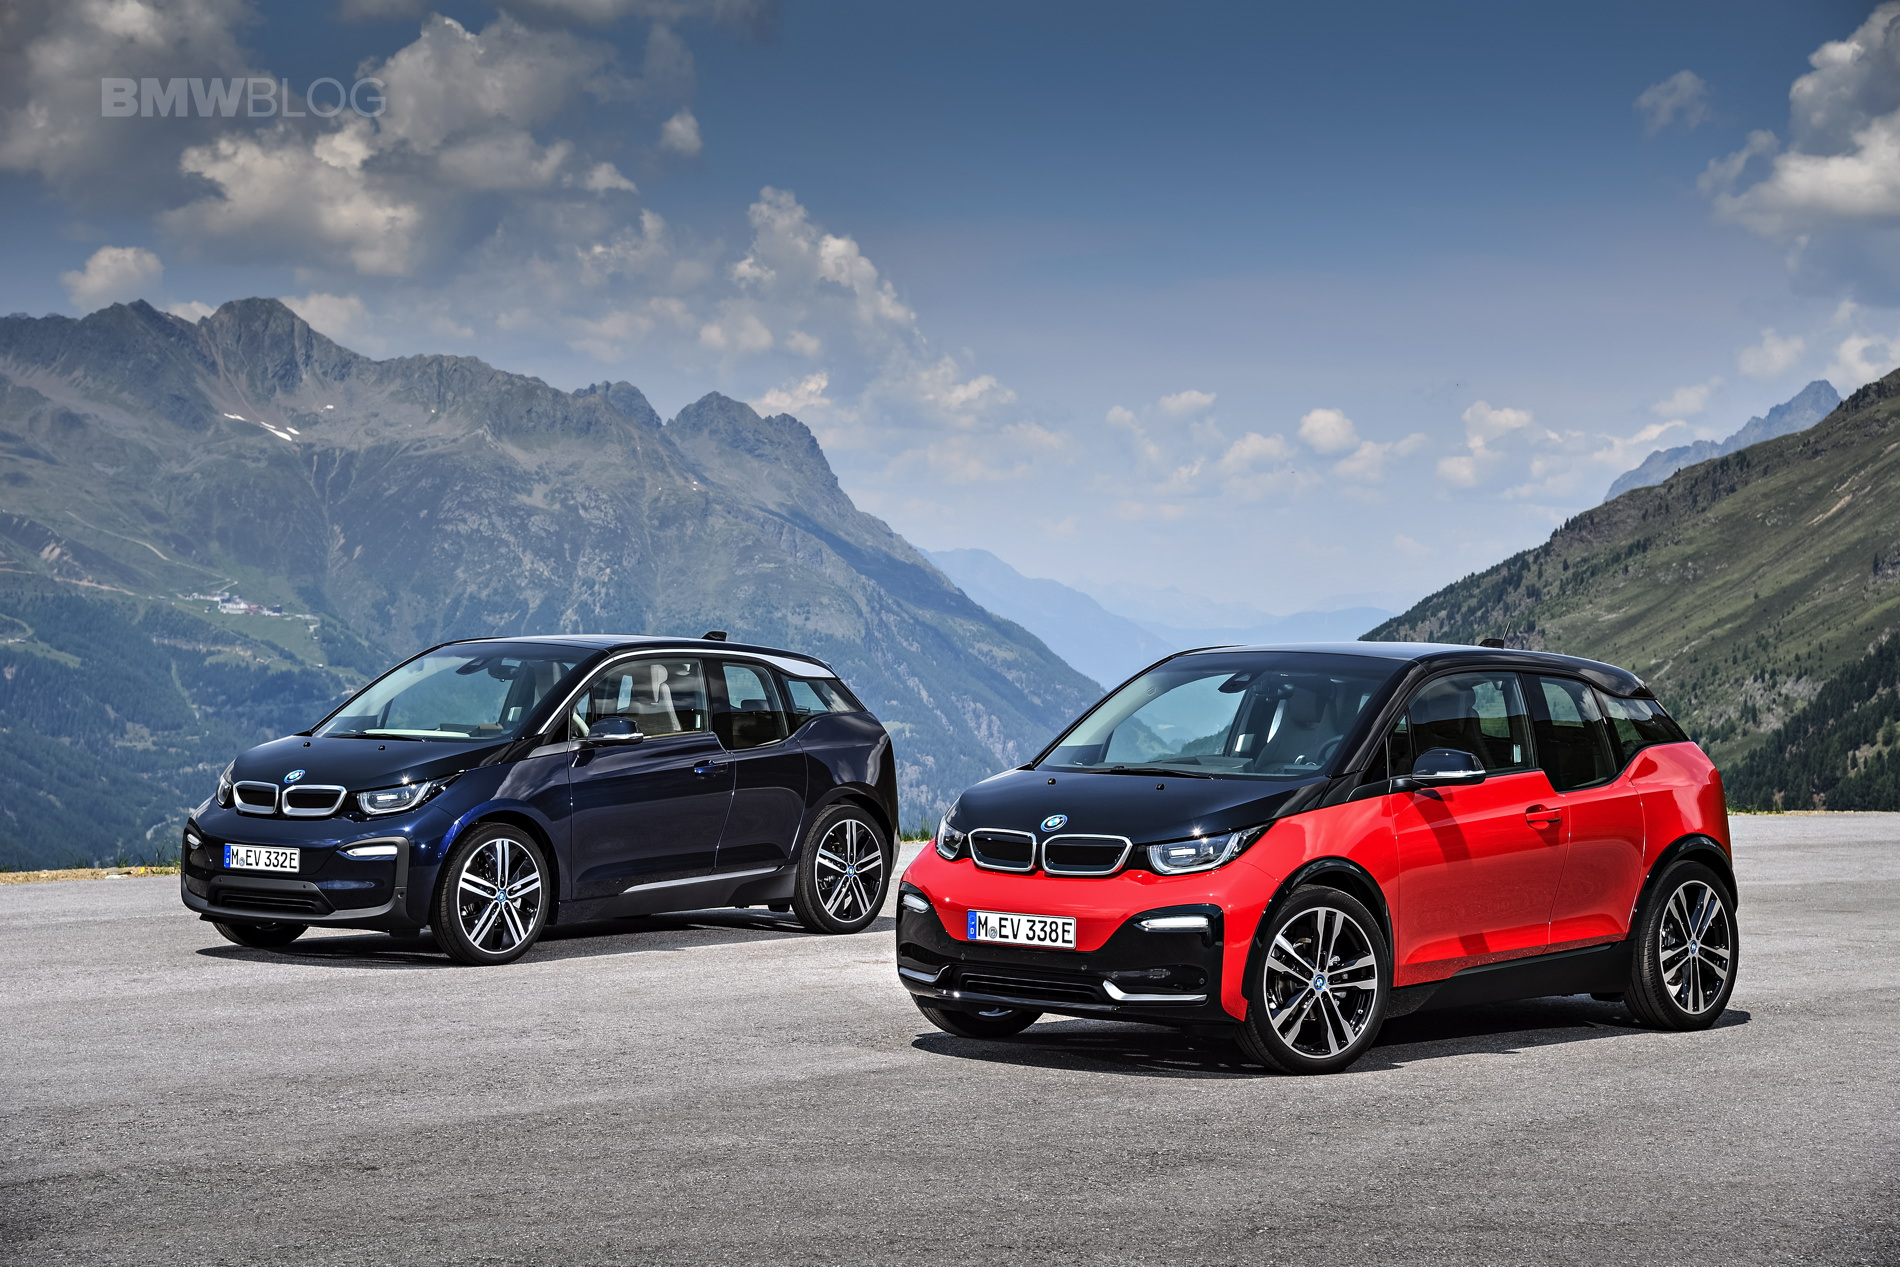 Bmw X5 Alpina >> The new BMW i3s and i3 Facelift - First Videos